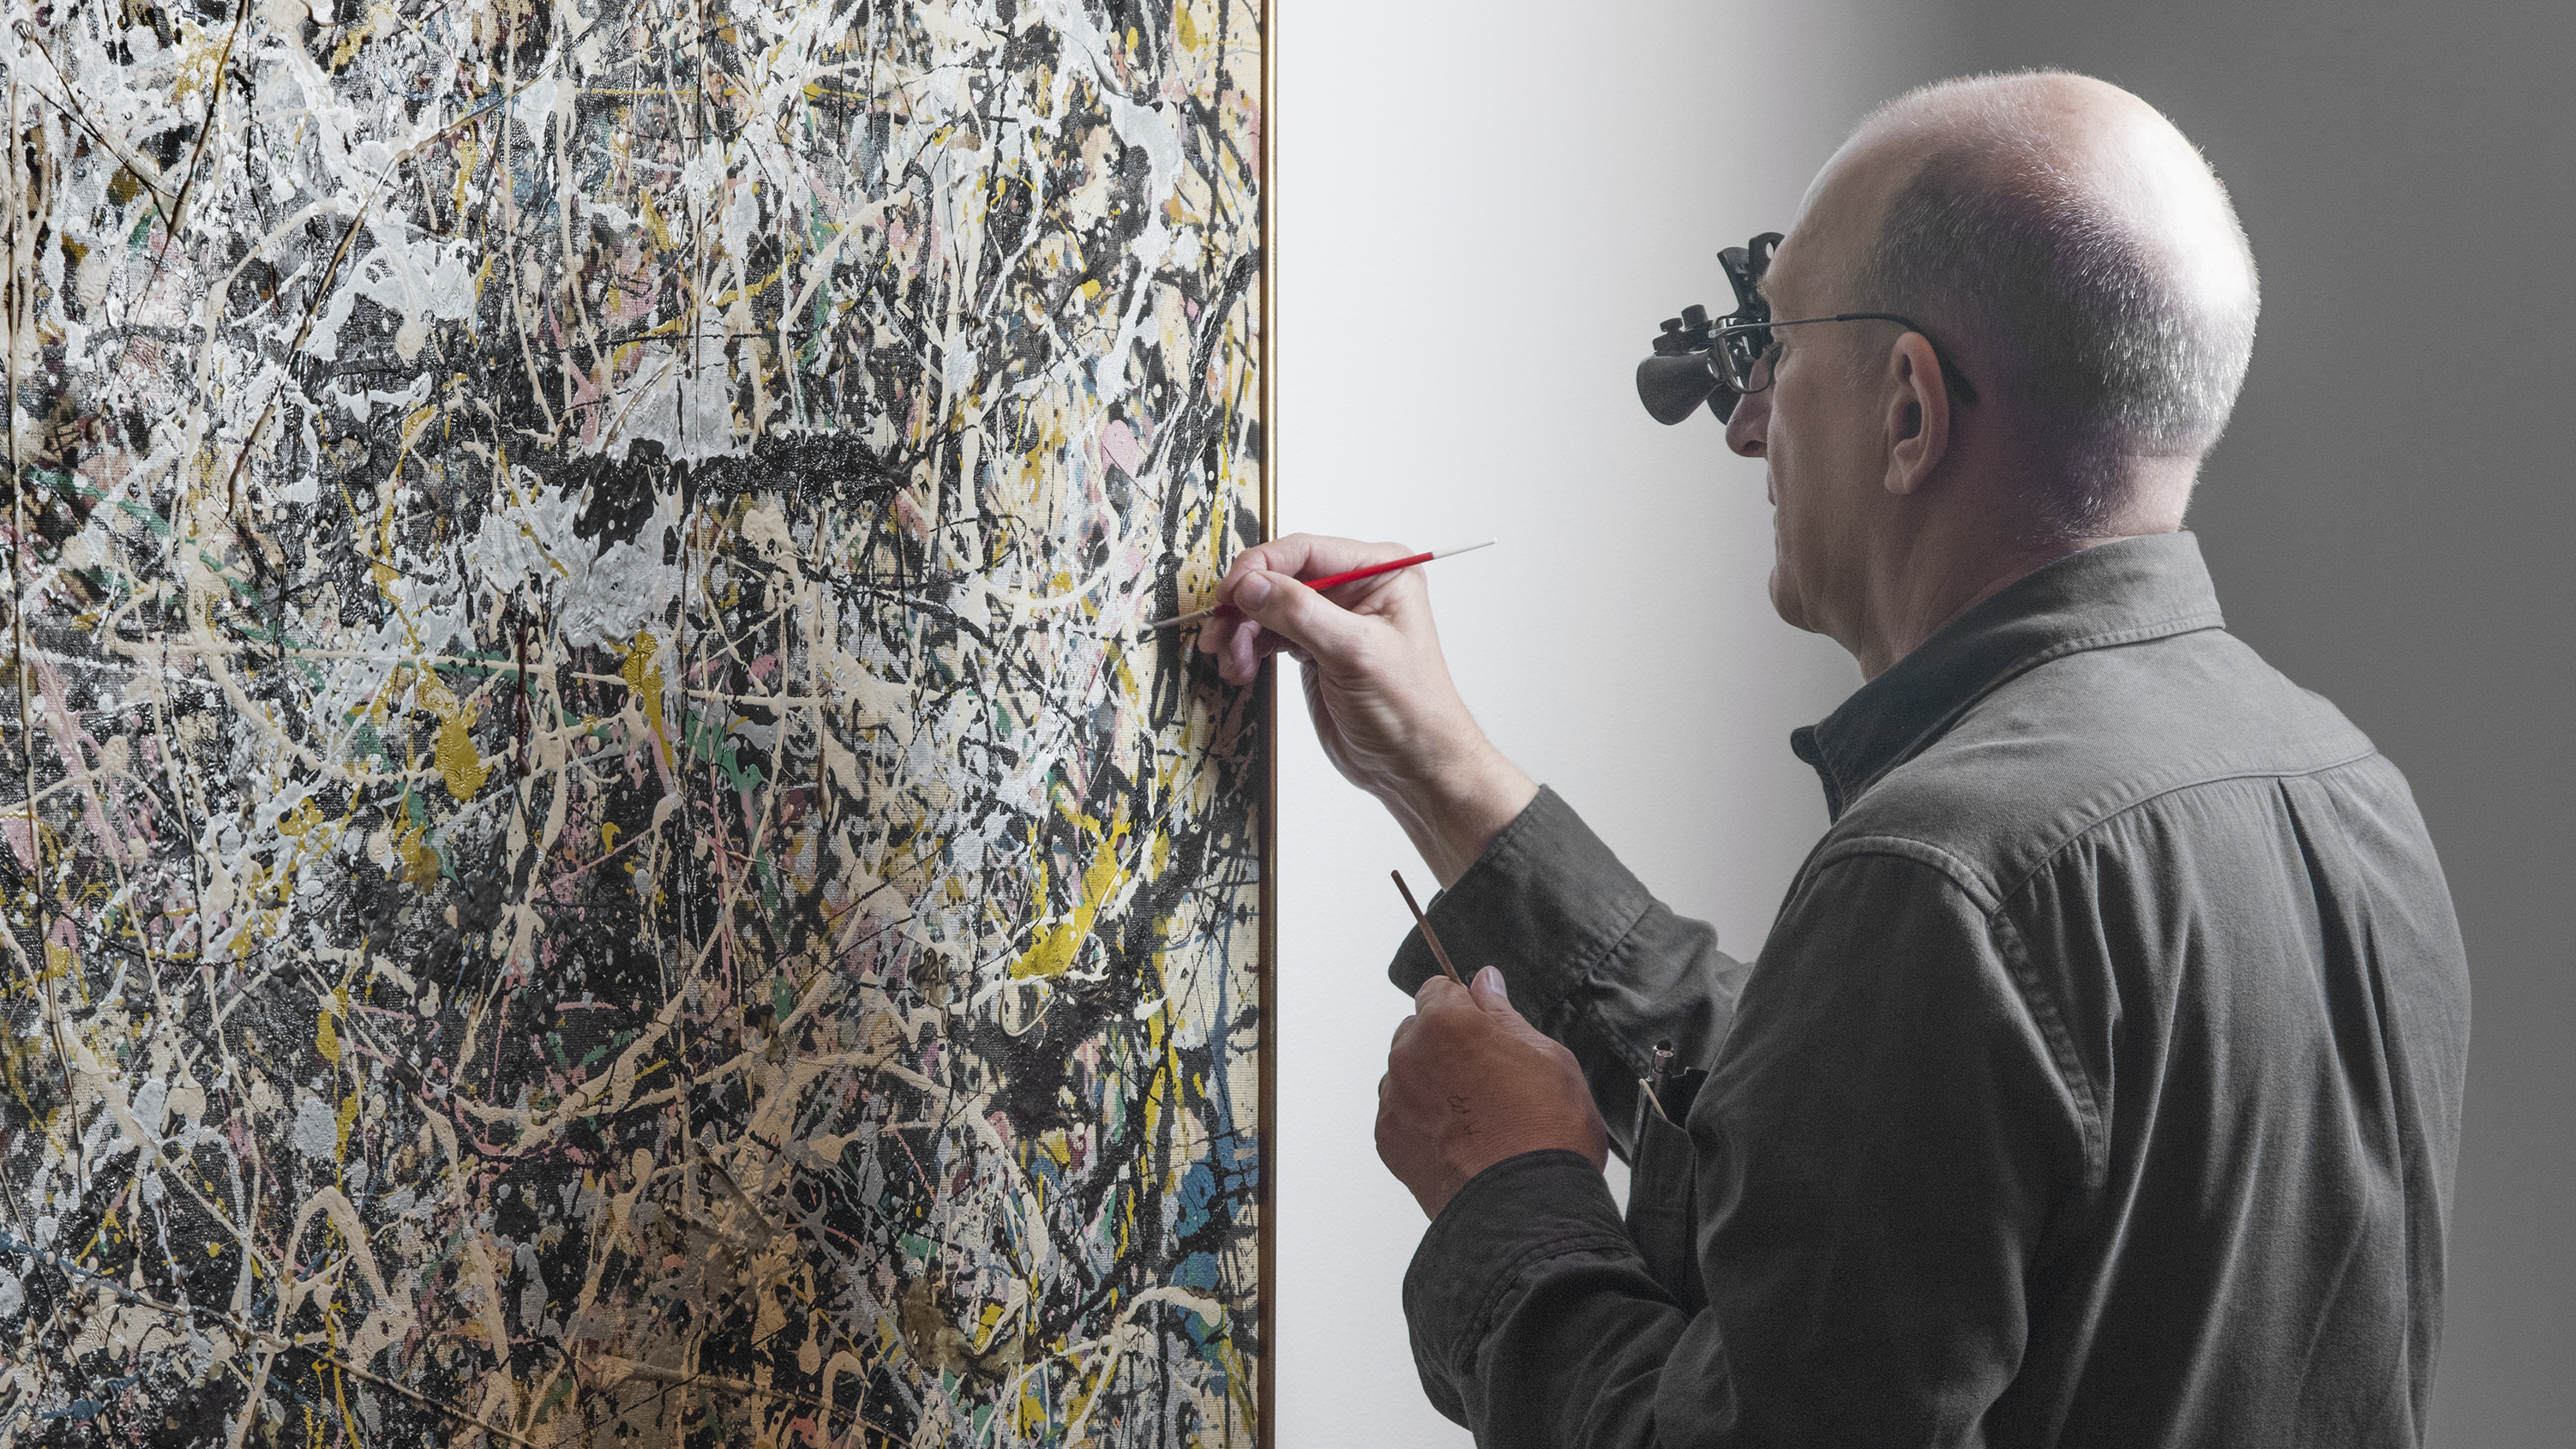 4 falten methode jackson pollock how to use a moody diagram painting gets touch up  and the